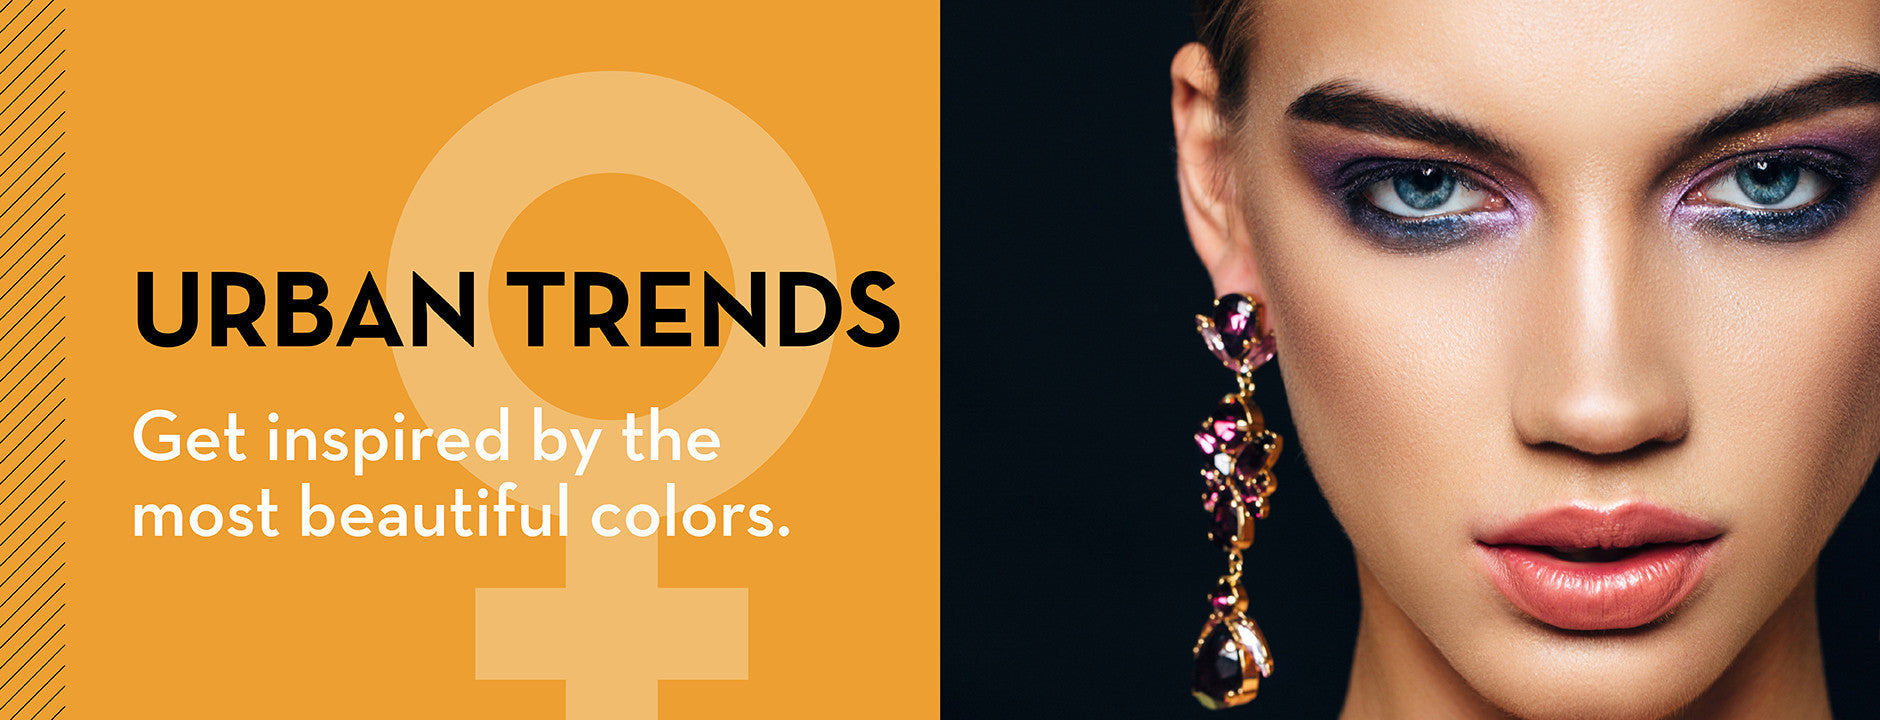 Bronx Colors - Urban Trends